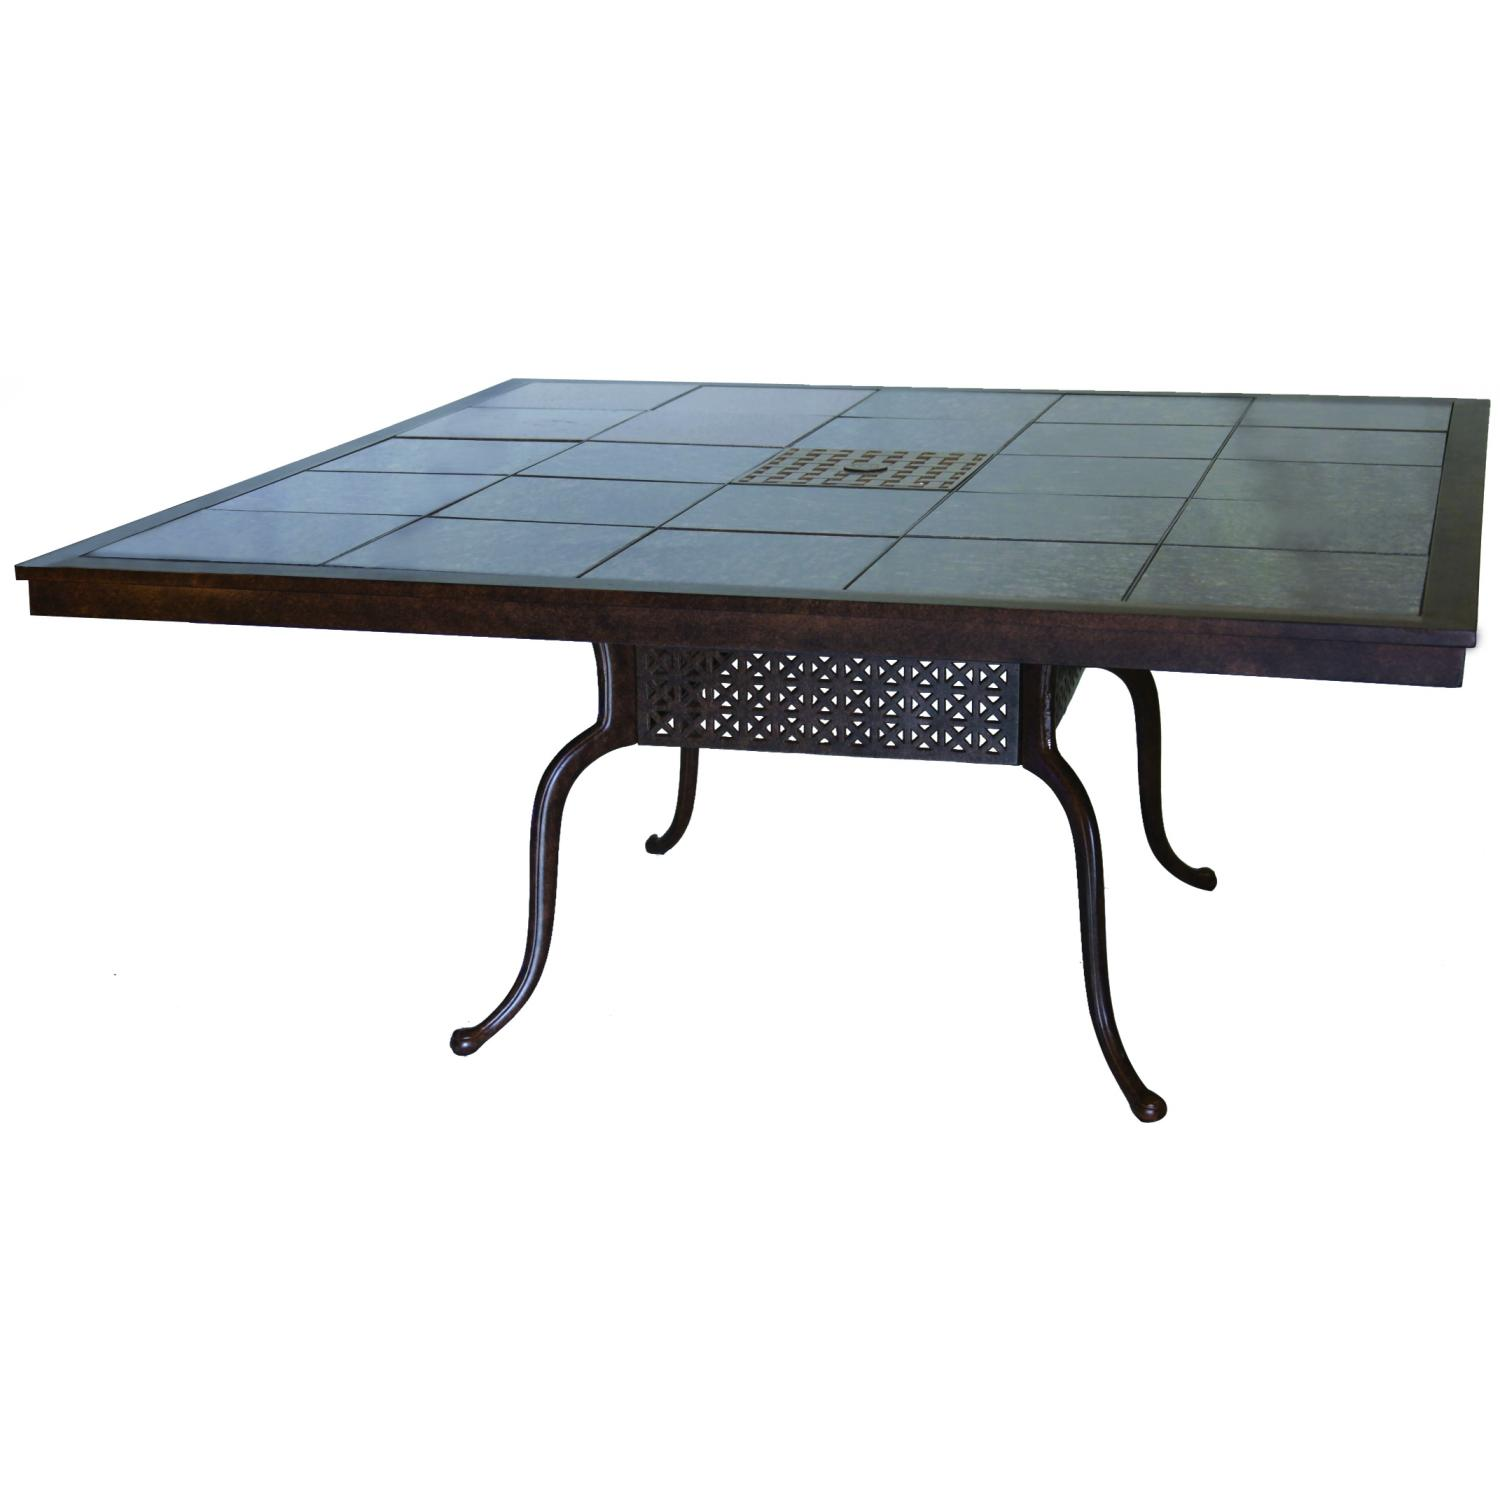 Darlee Series 77 Cast Aluminum Patio Dining Table With Granite Top - Antique Bronze / Brown Granite Tile at Sears.com